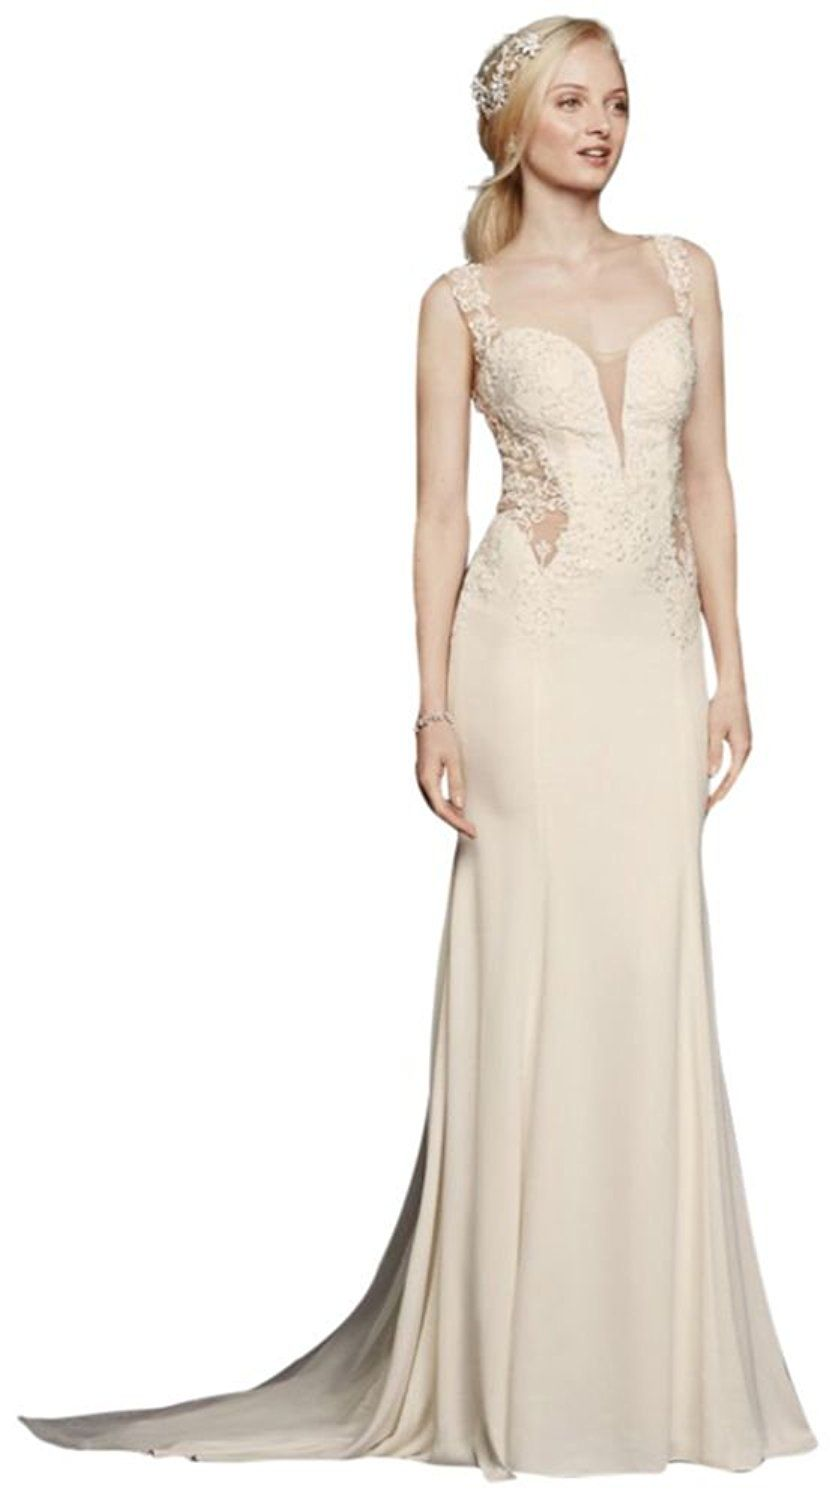 Grey lace wedding dress  Crepe Beaded Lace Wedding Dress with Illusion Details Style SWG